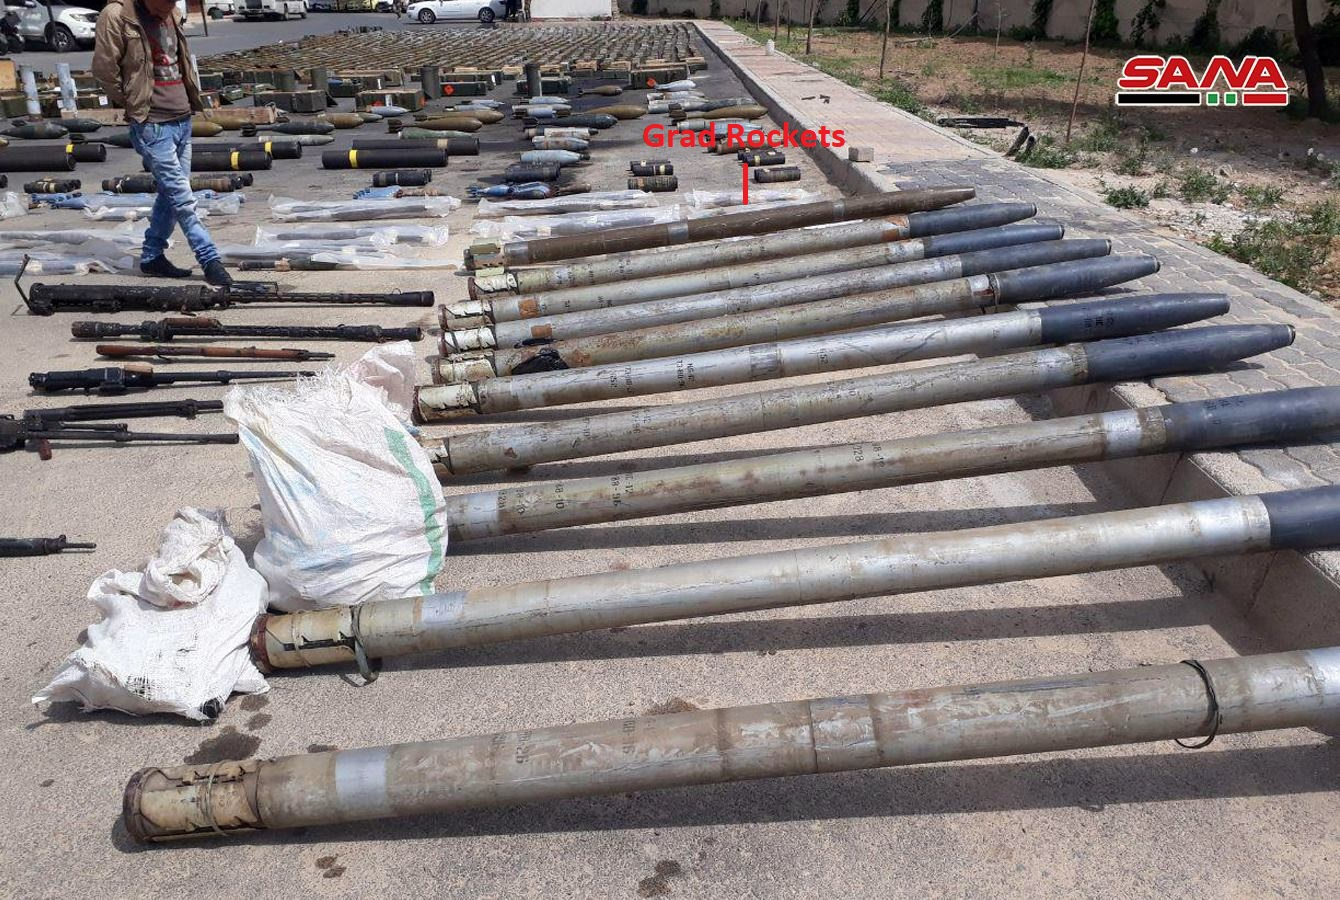 Syrian Army Uncovers Loads Of US-Supplied Weapons, Including TOW Missile, South Of Damascus (Video, Photos)